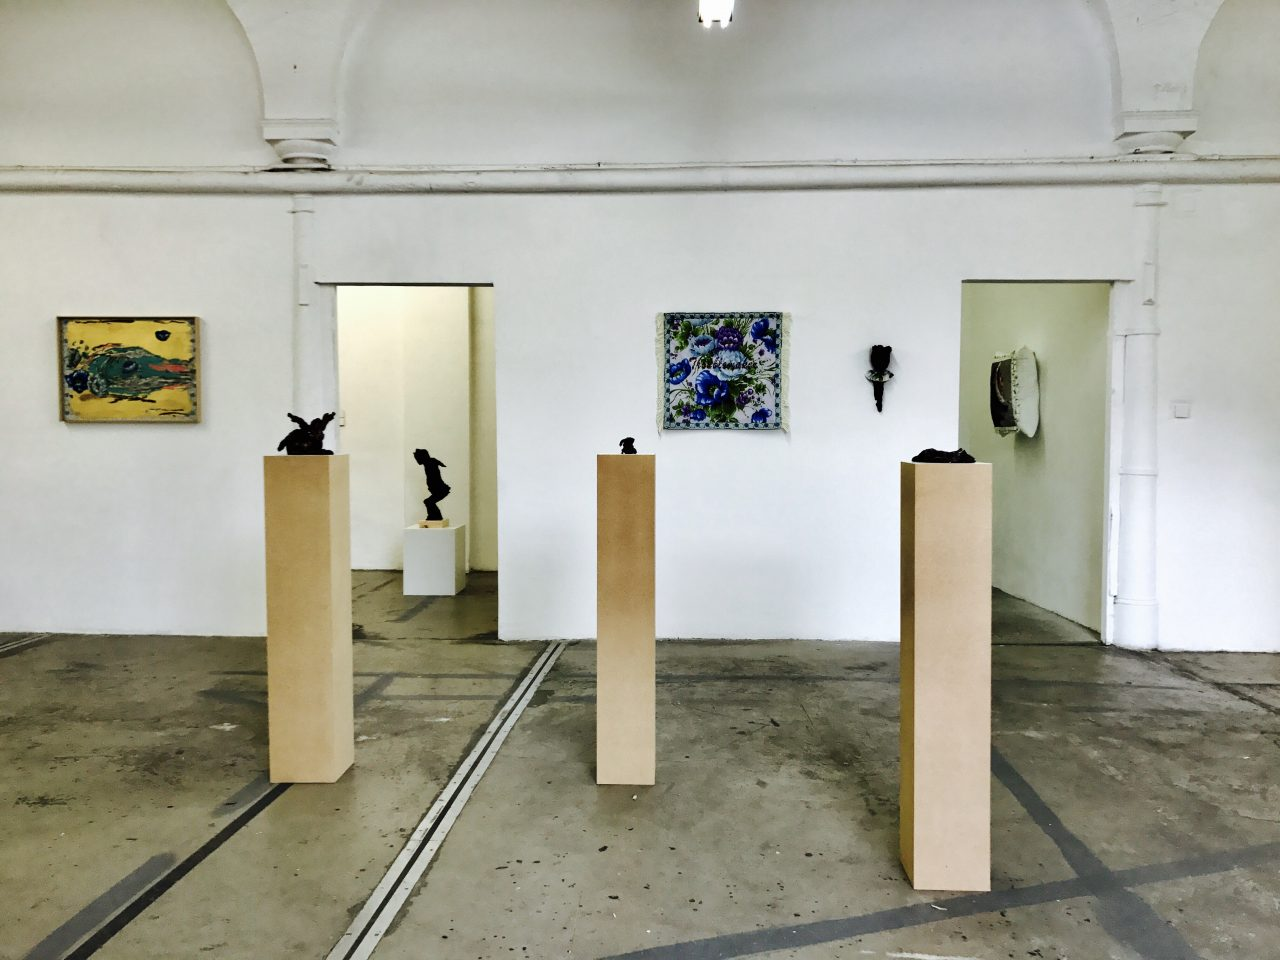 Atelierhof Kreuzberg, 2017, The Cycle Room, installation view, photo by Volker Roloff